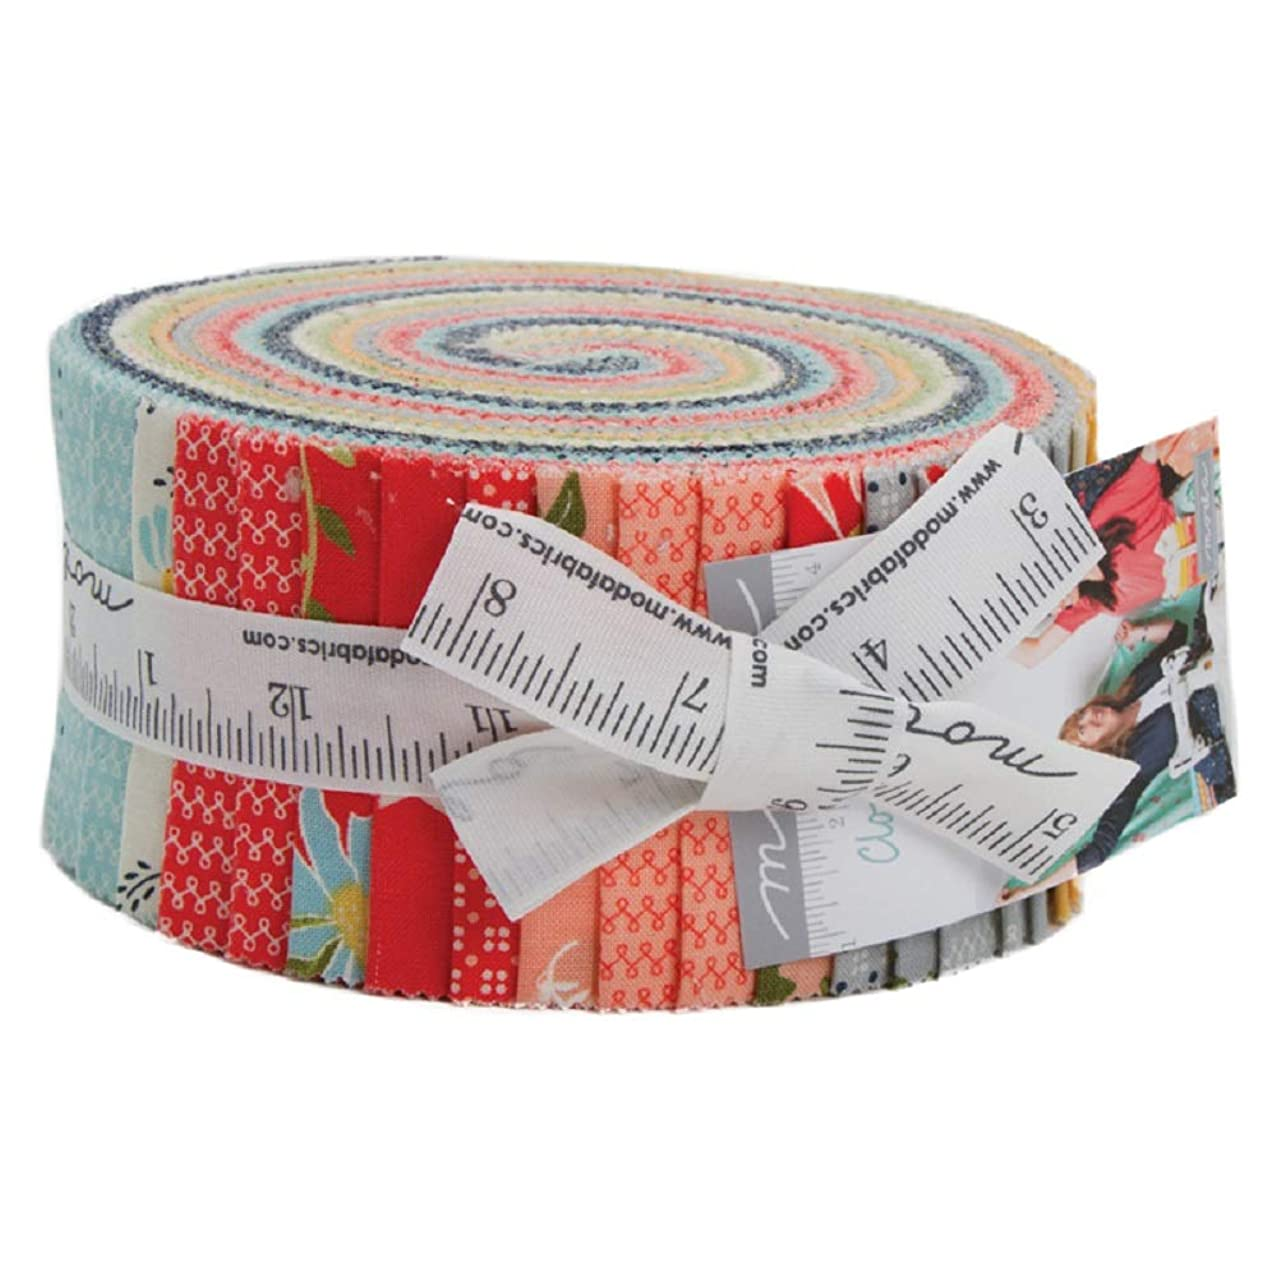 Clover Hollow Jelly Roll, 40 2.5